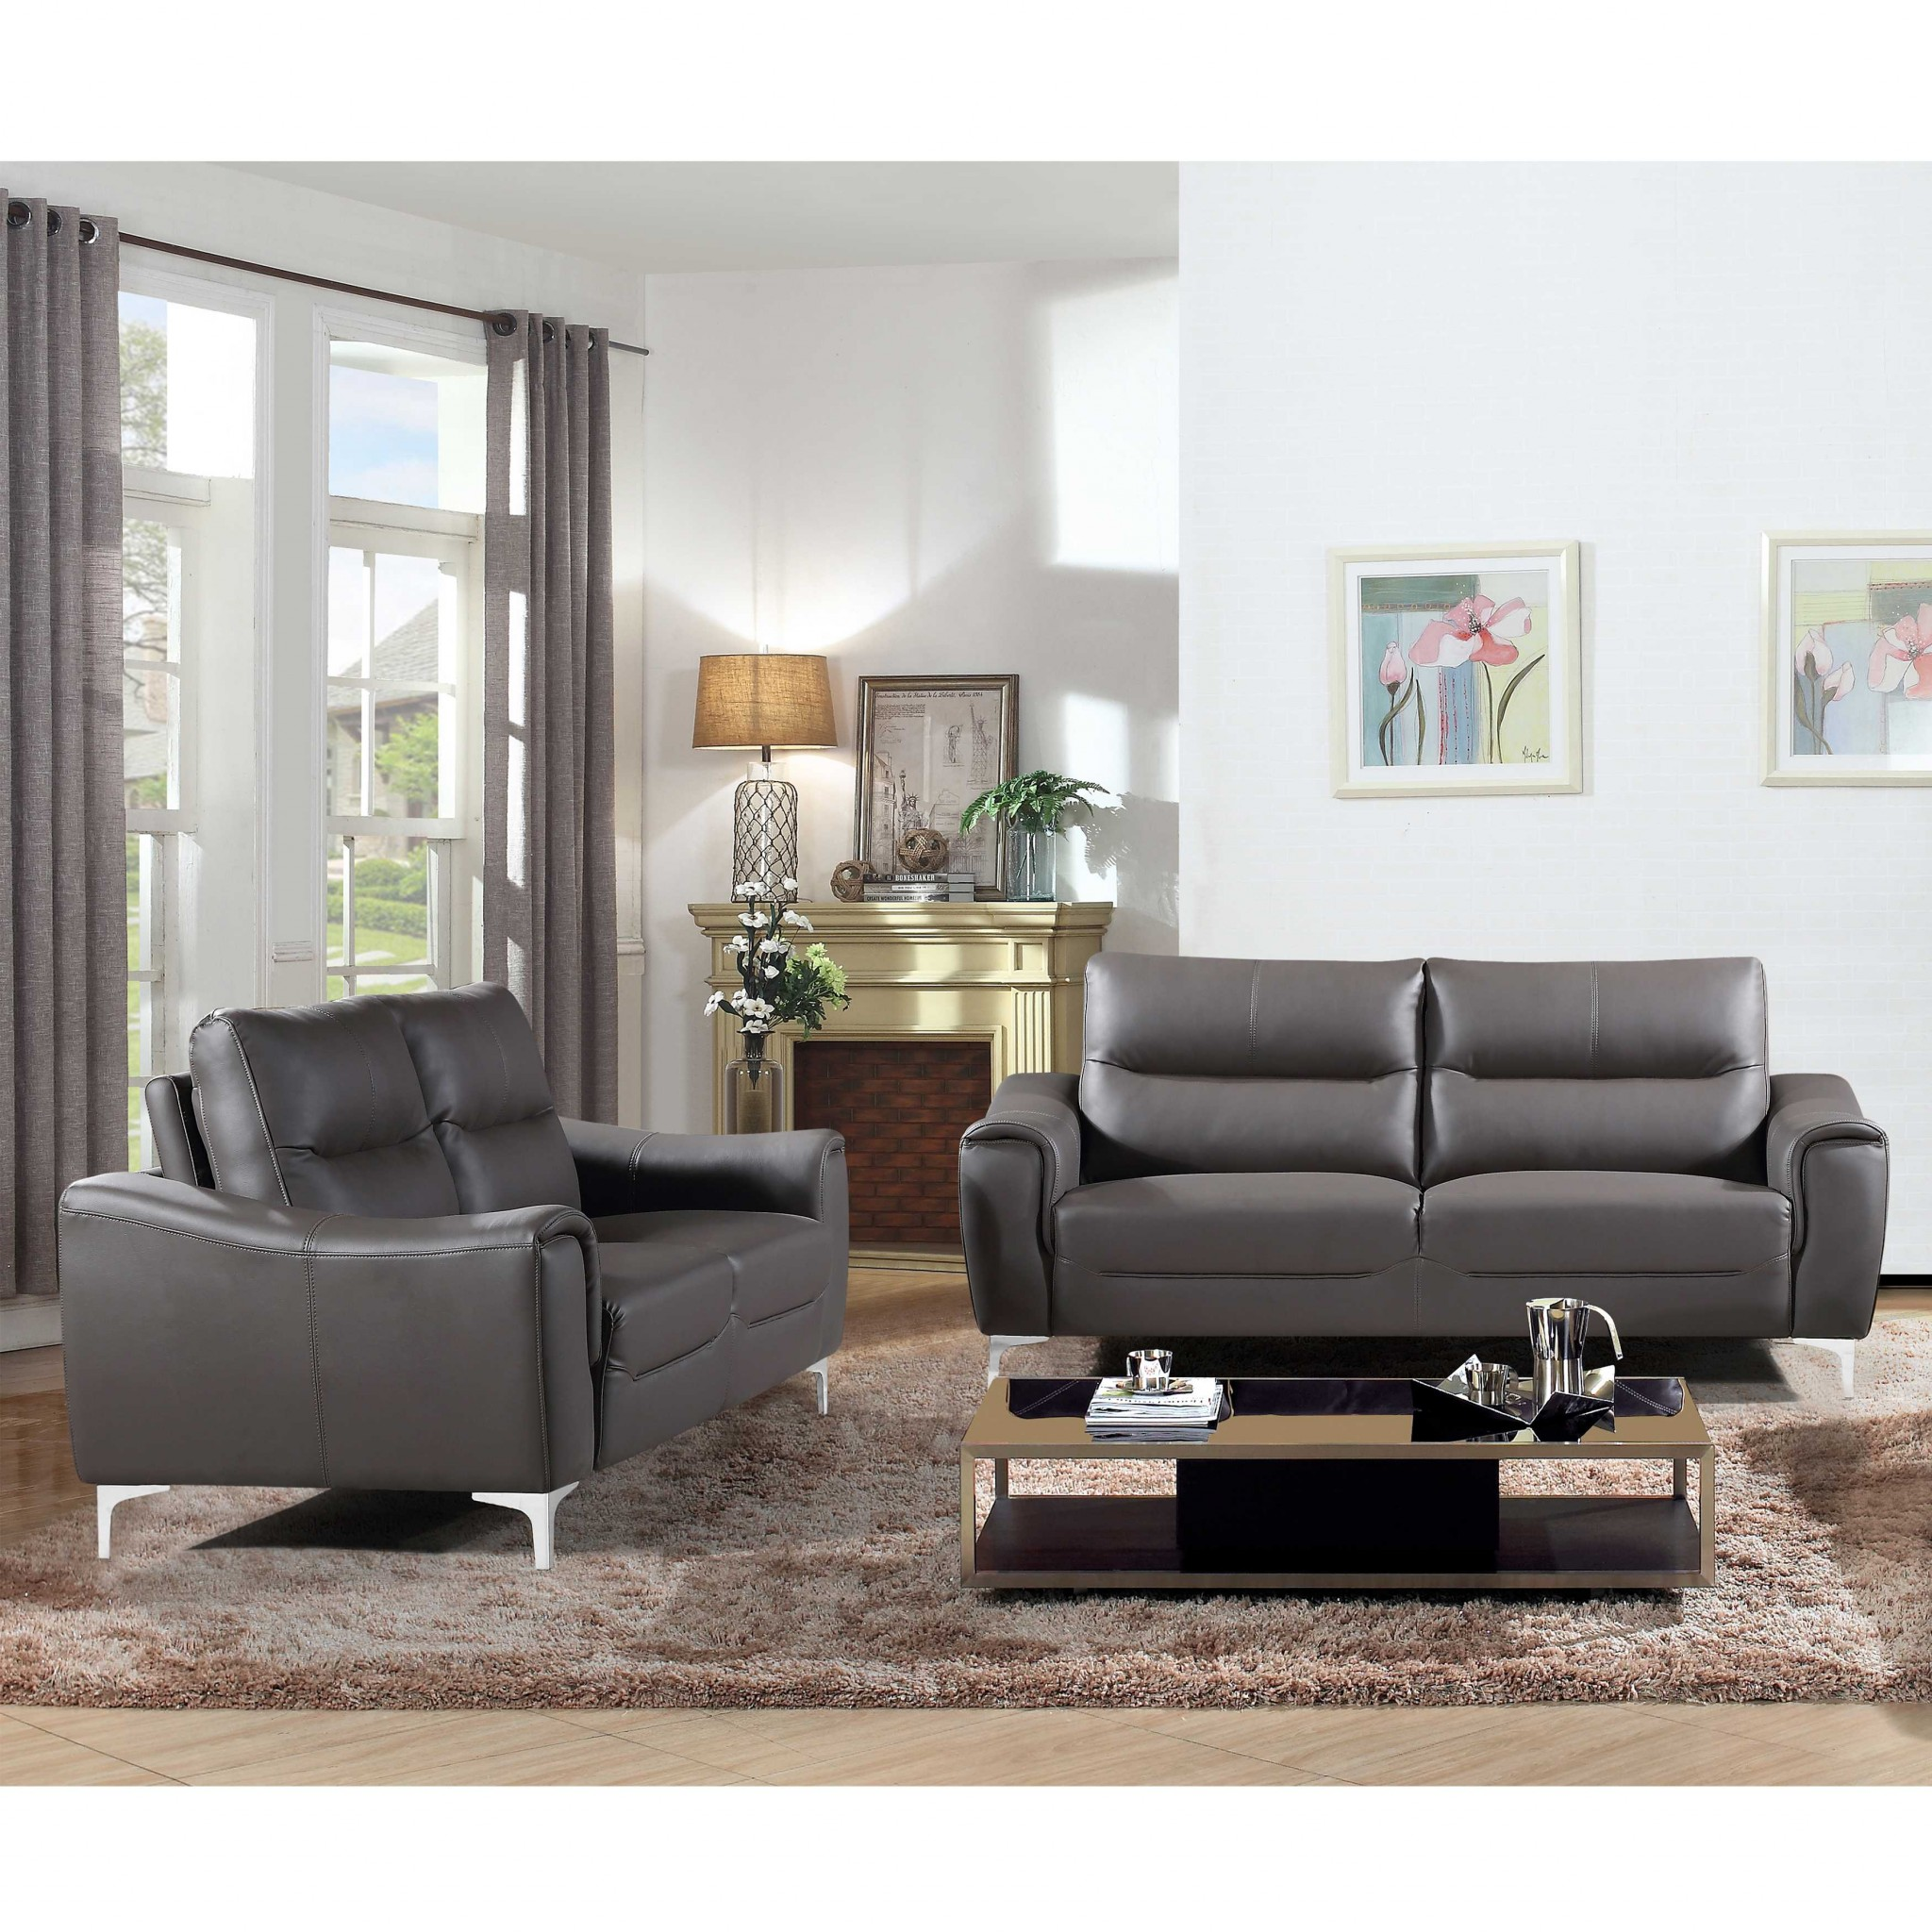 Gray 2 Piece  Modern Leather and Fabric Upholstered Stationary Sofa and Loveseat